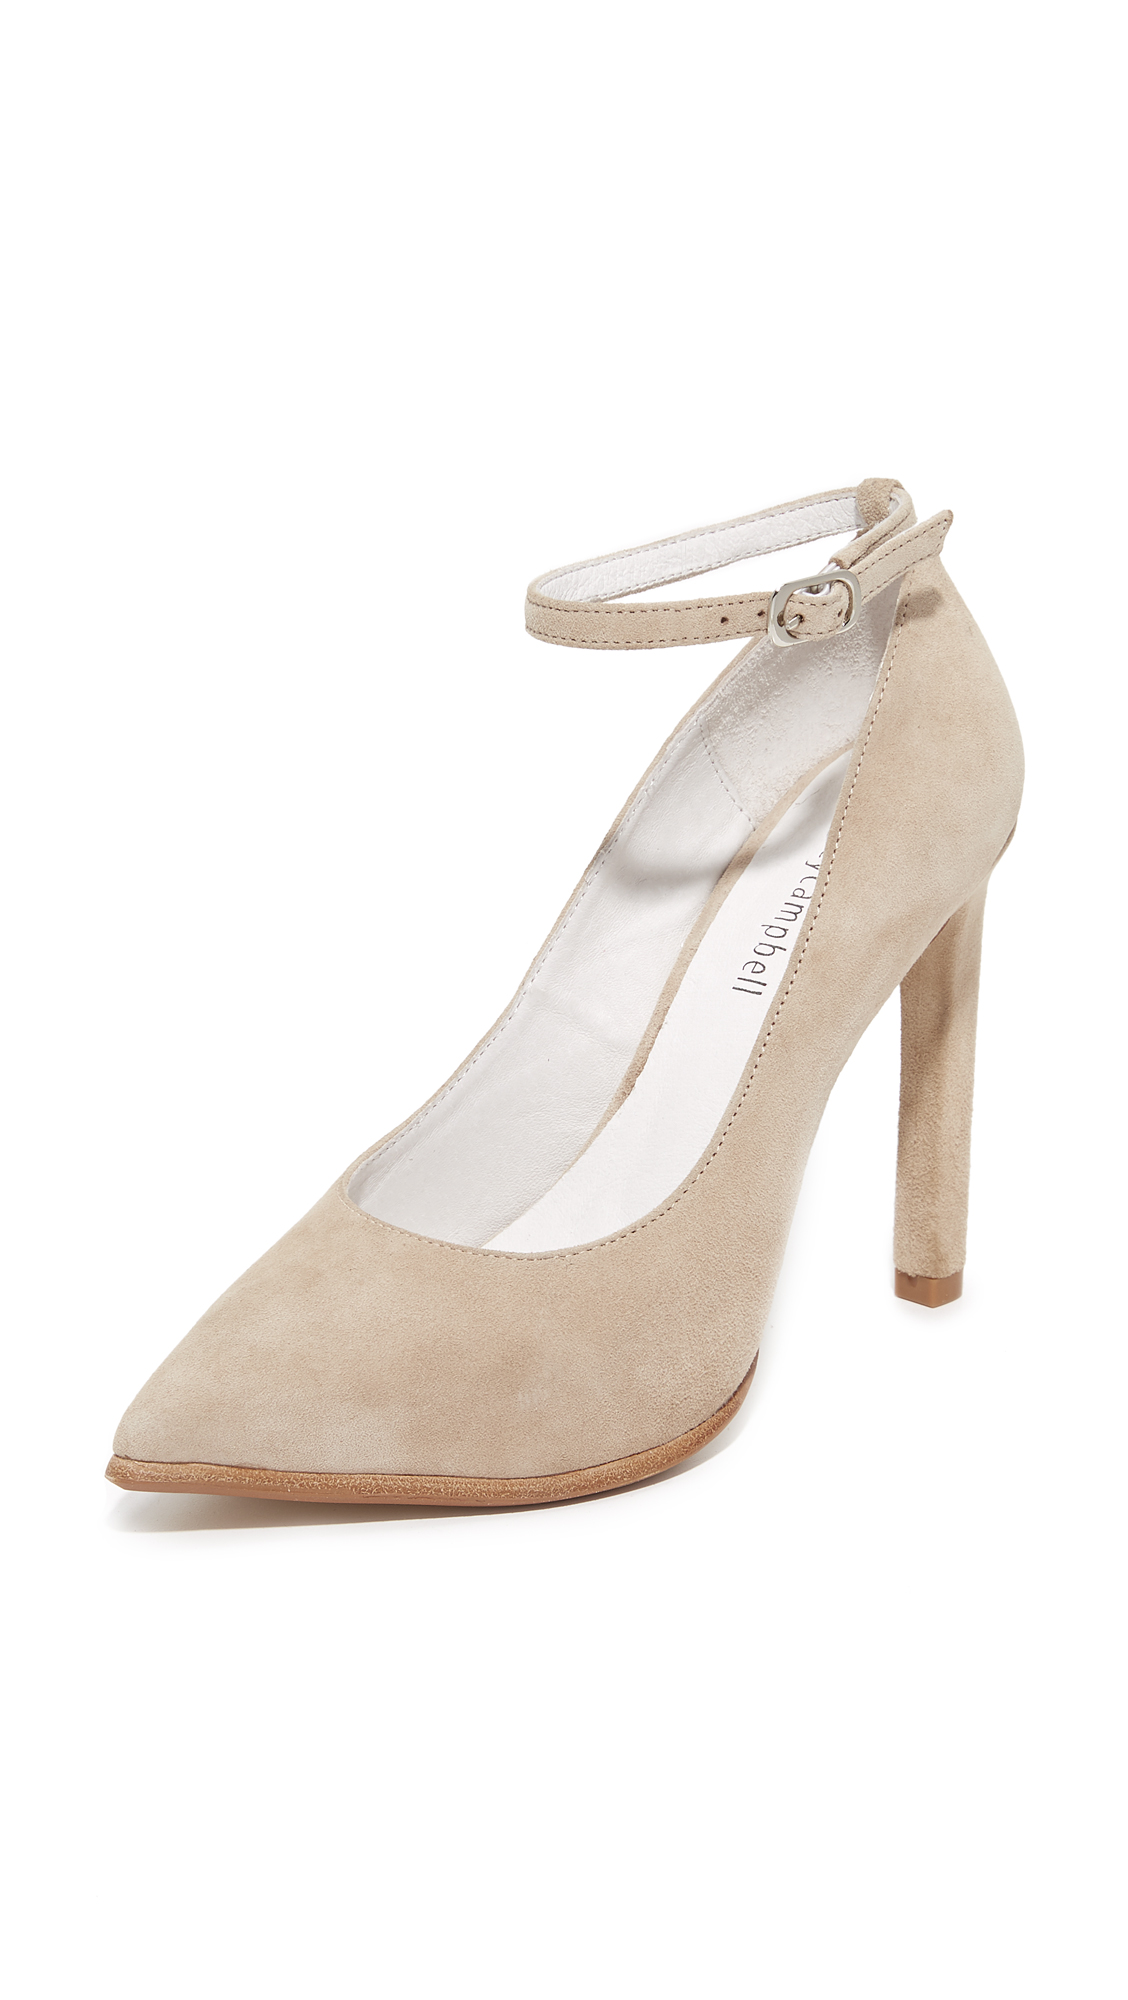 Jeffrey Campbell Lentine Pumps - Nude